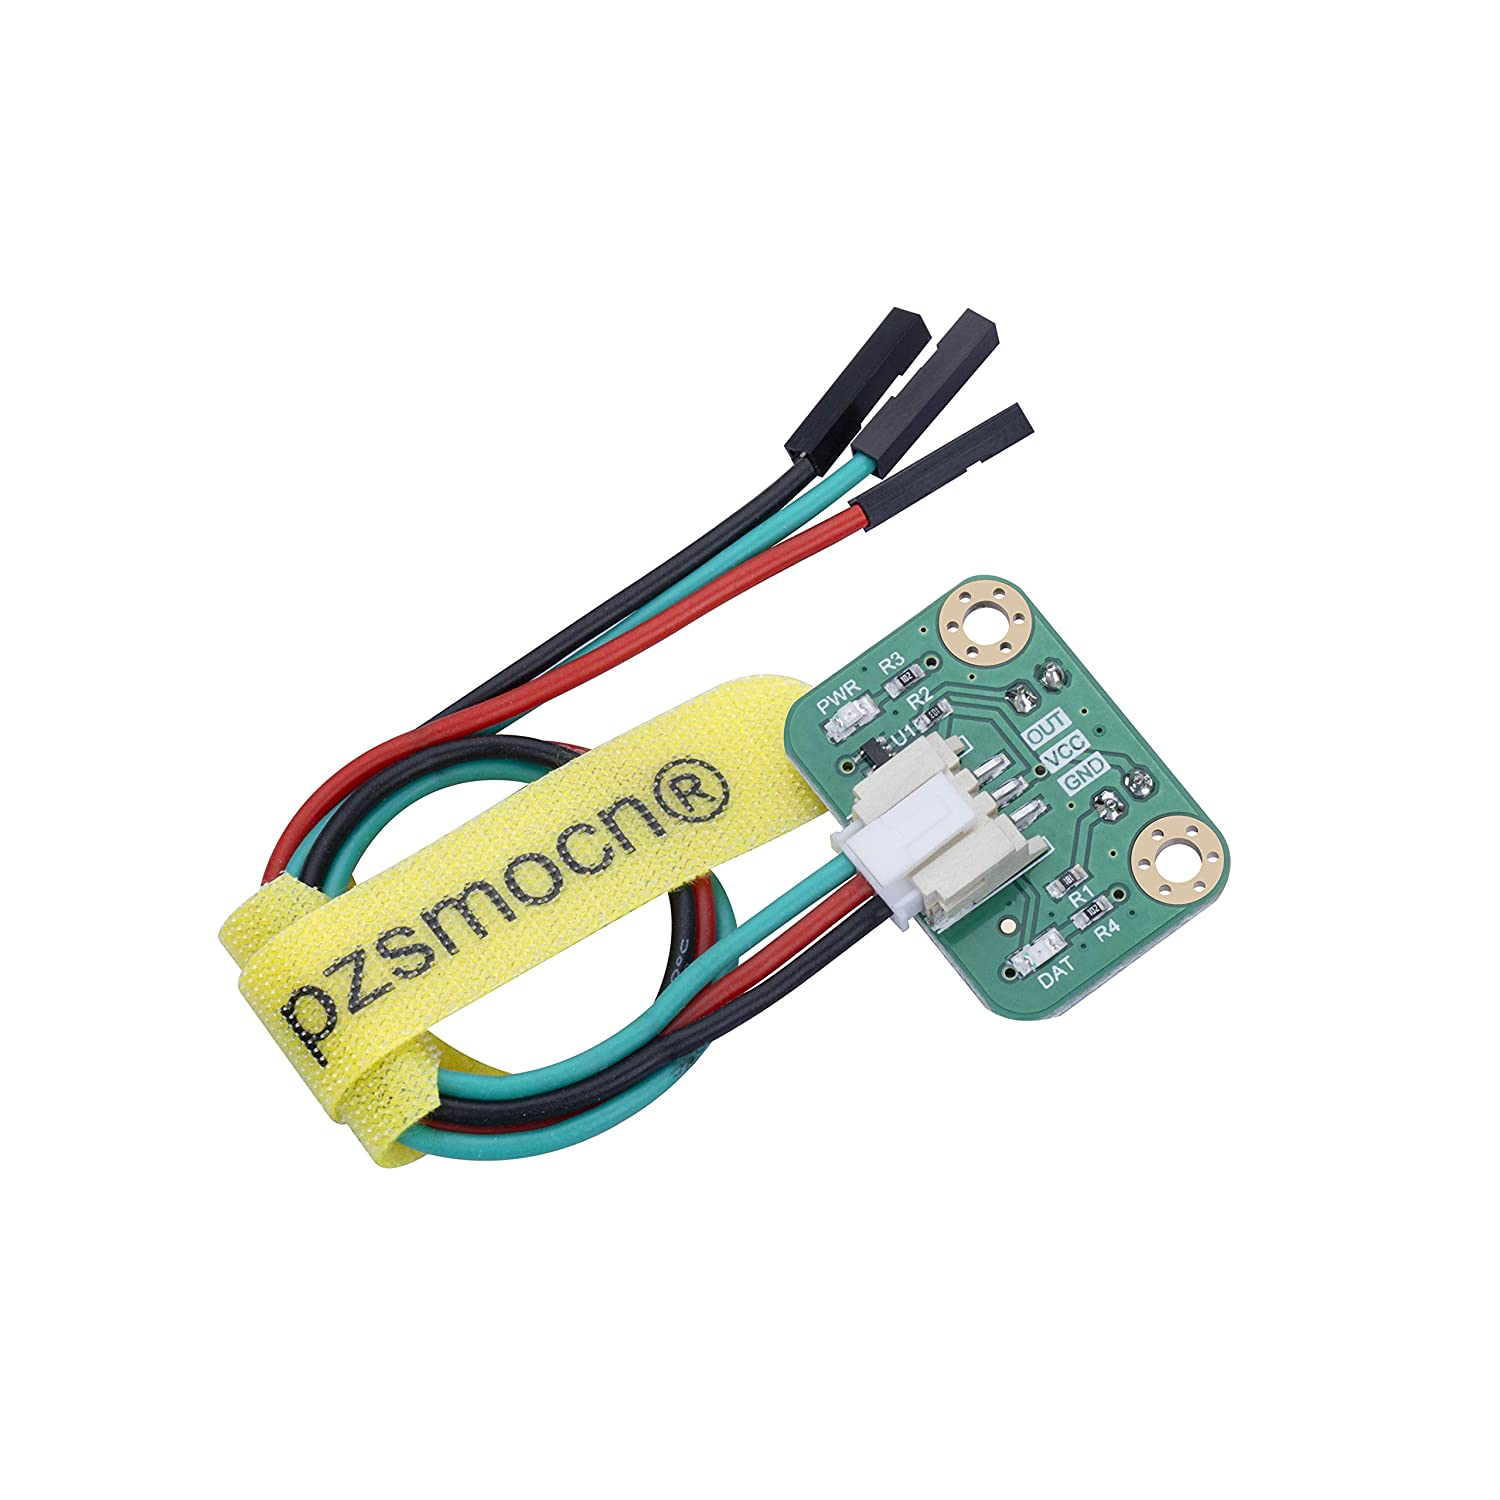 Facsimile Pulse Counter. pzsmocn ITR9608 Photo Sensor Compatible with Raspberry Pi//Arduino Board Motor Speed Detection Opto-electronic Switch for Copier Ticket Vending Machine Printer